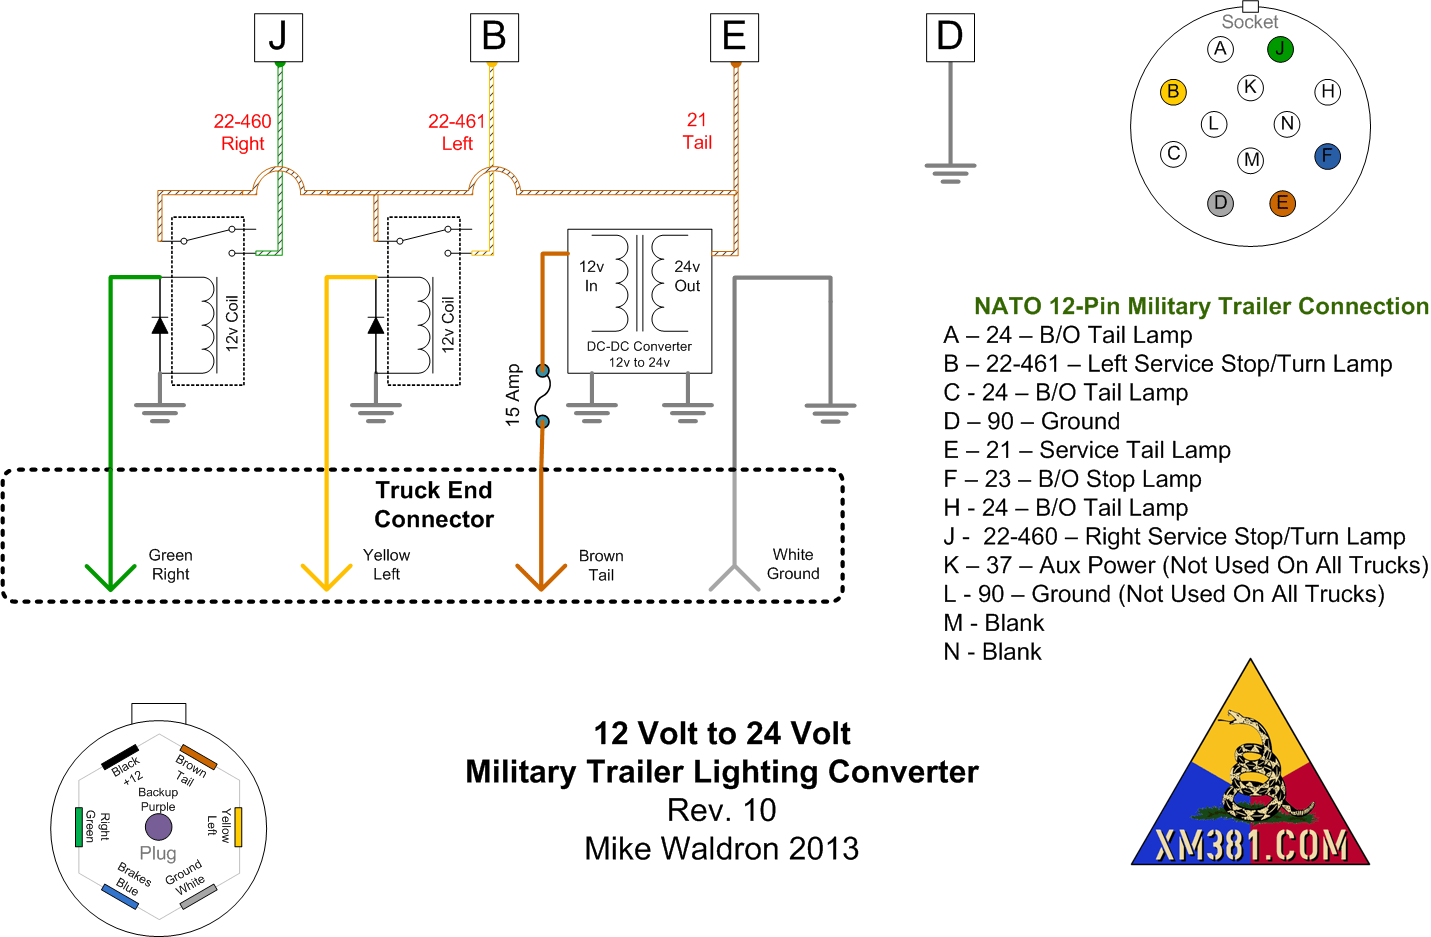 7 way round trailer plug wiring diagram heat sequencer xm381 12 volt civllian truck to 24 military lighting semi